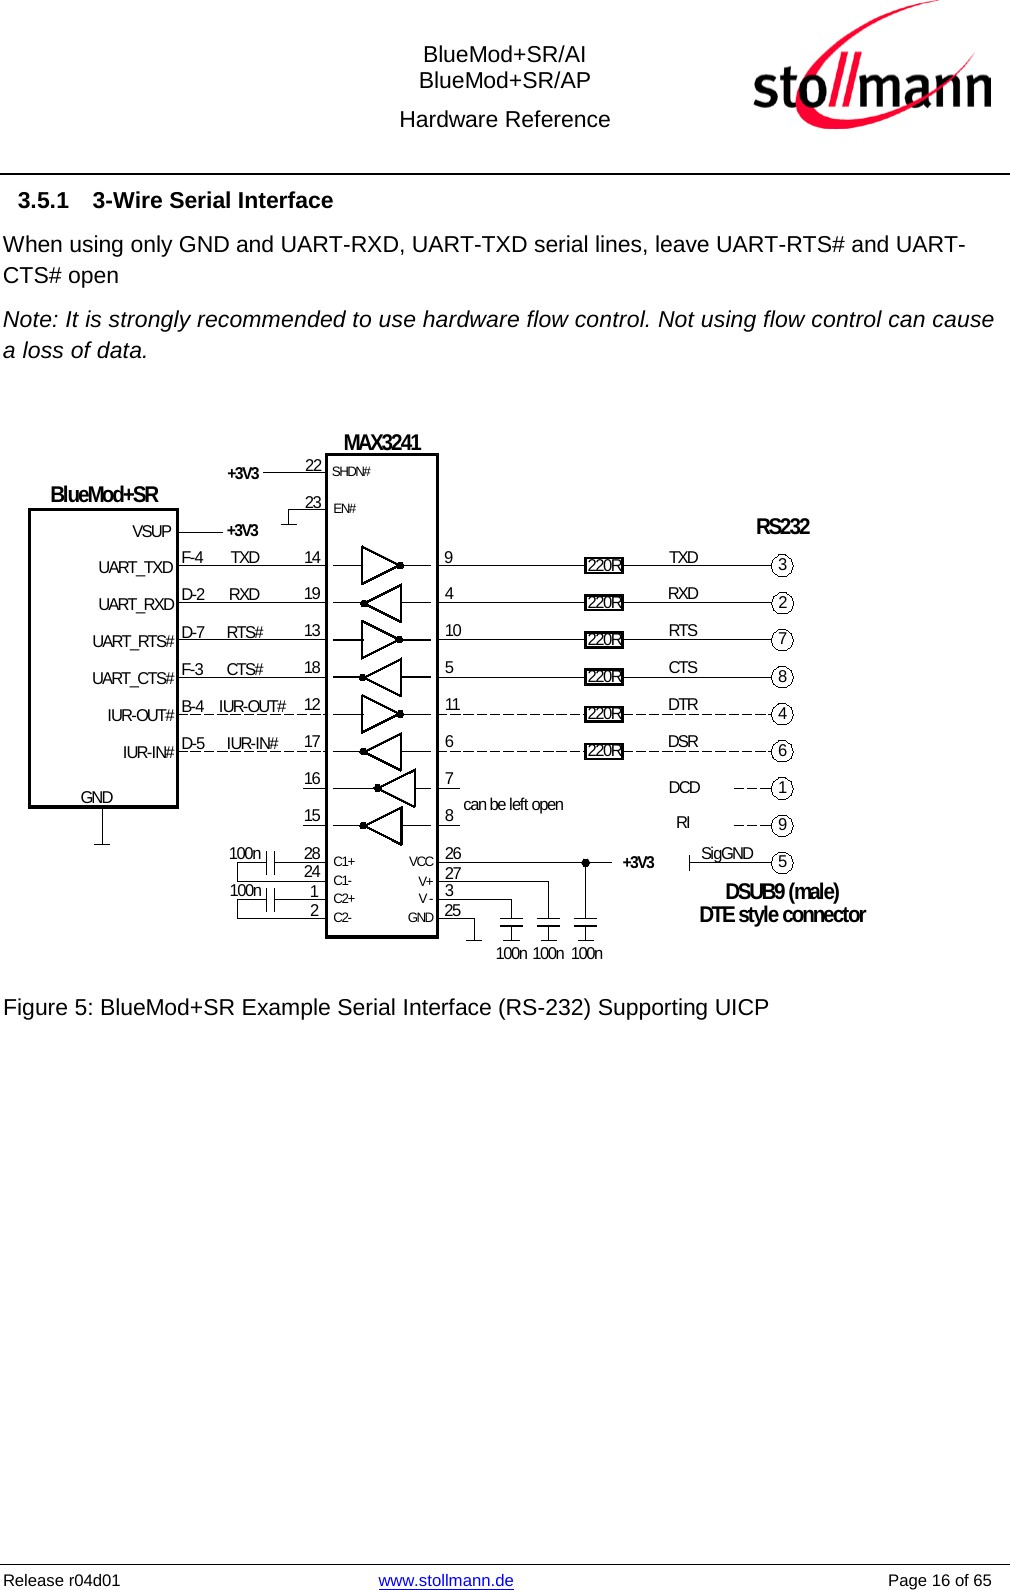 Inspirational At U0026t Network Interface Device Wiring Diagram